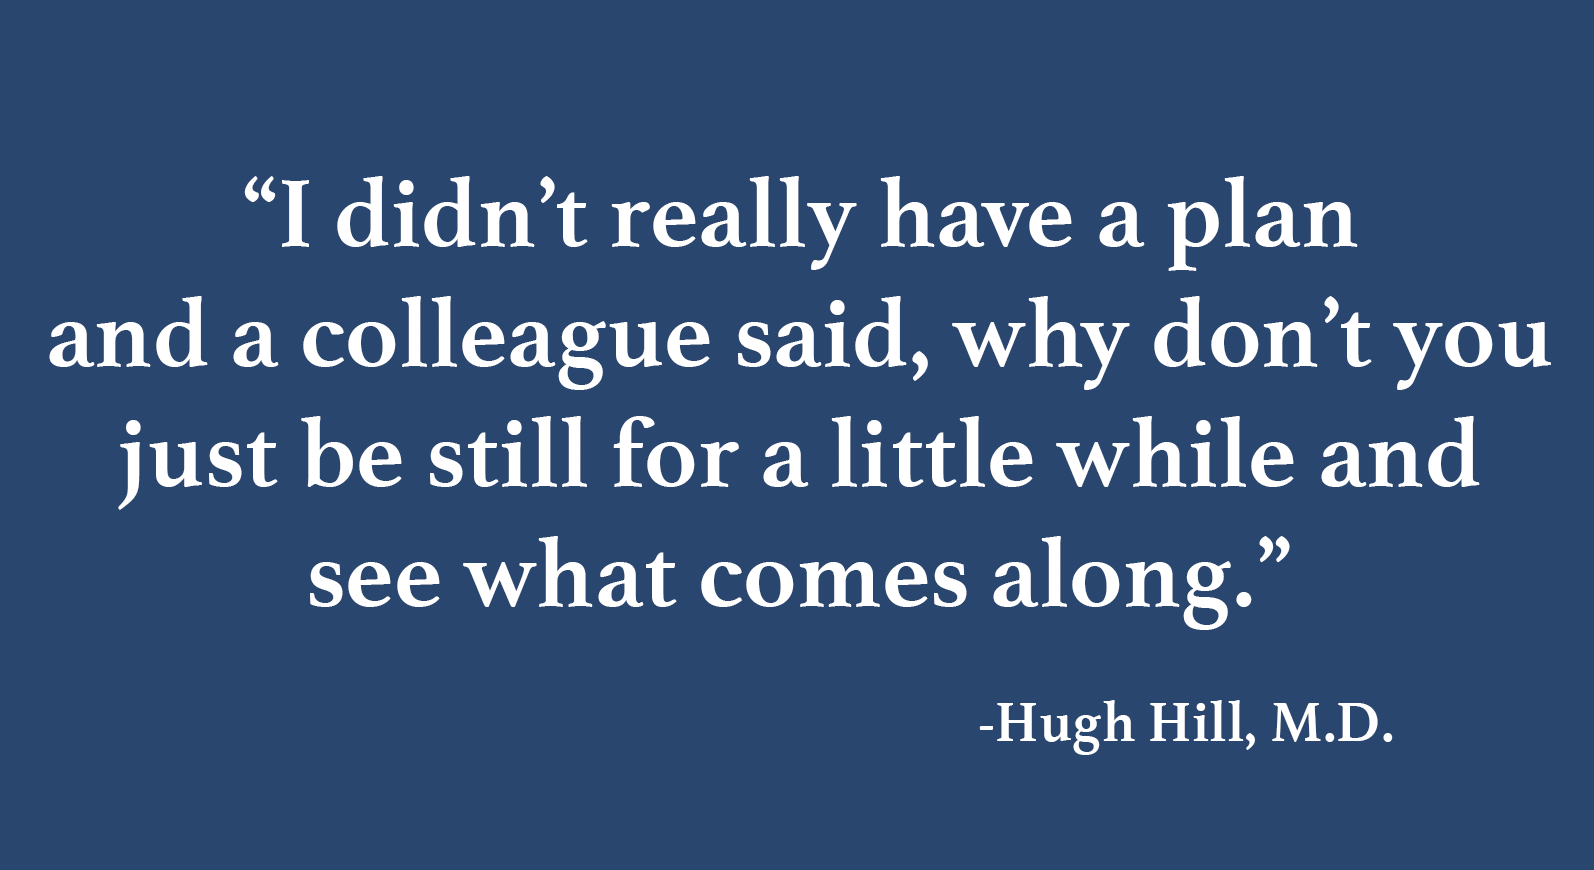 Hugh Hill Quote.png